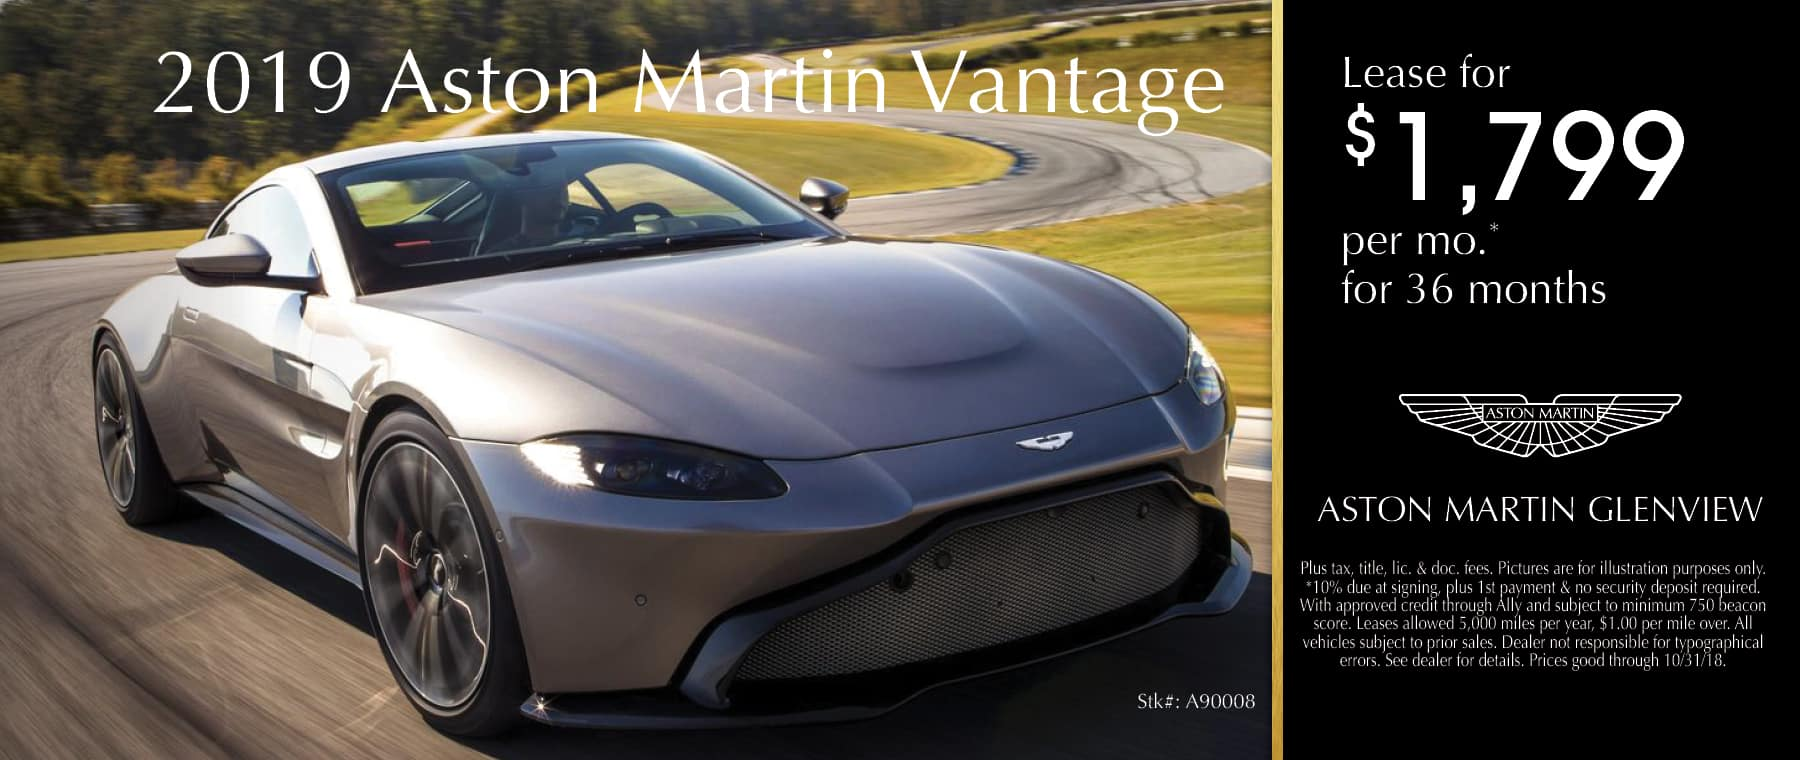 Glenview Luxury Imports Aston Martin Lotus Dealer In Chicagoland - Aston martin lease price